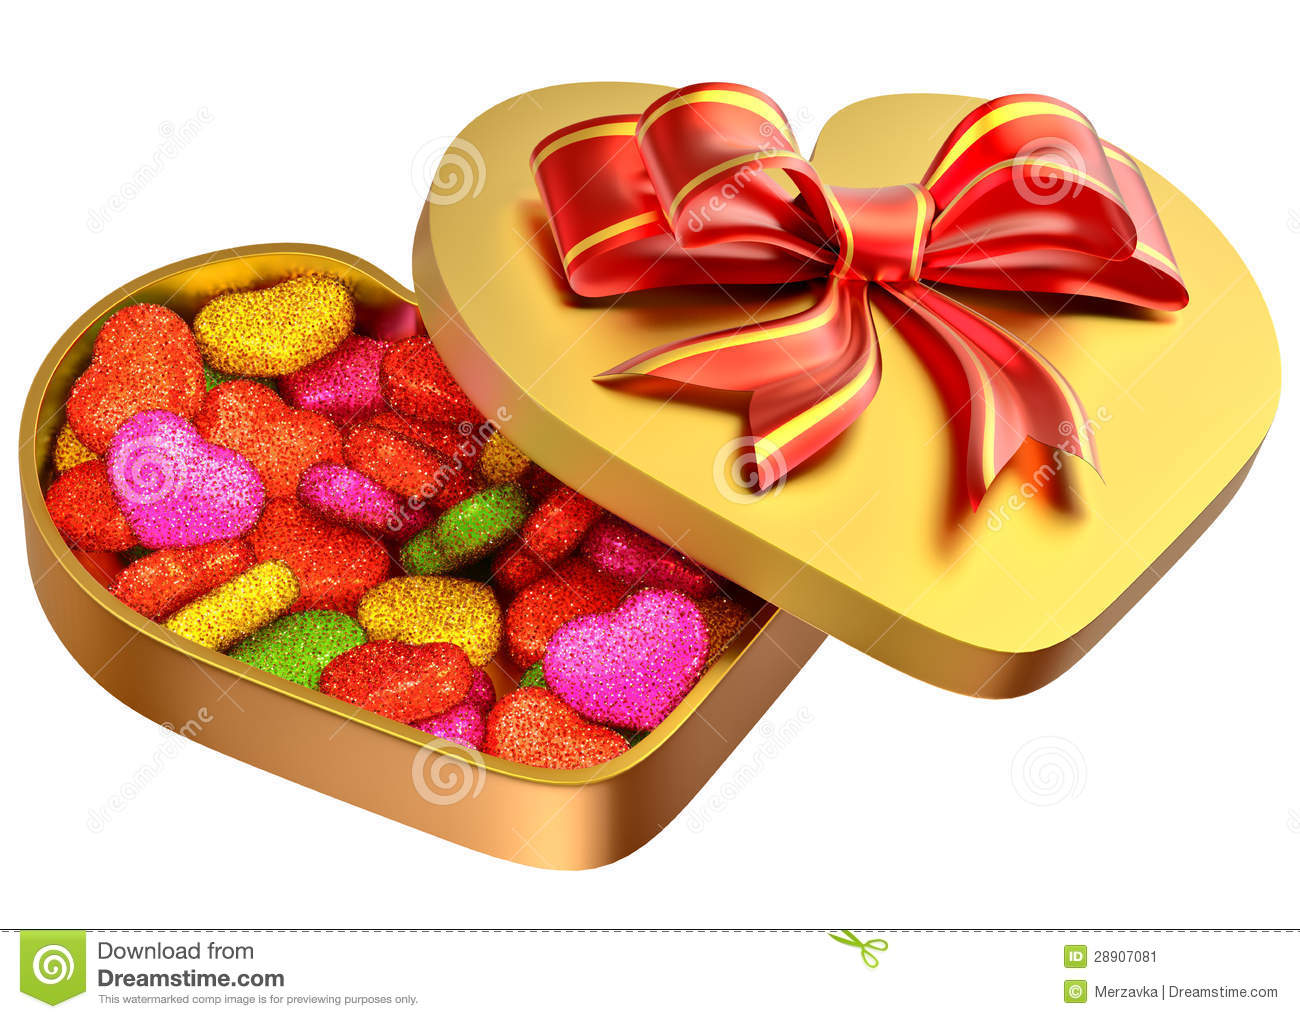 Candy In A Box As A Gift For Valentine's Day Stock Image.